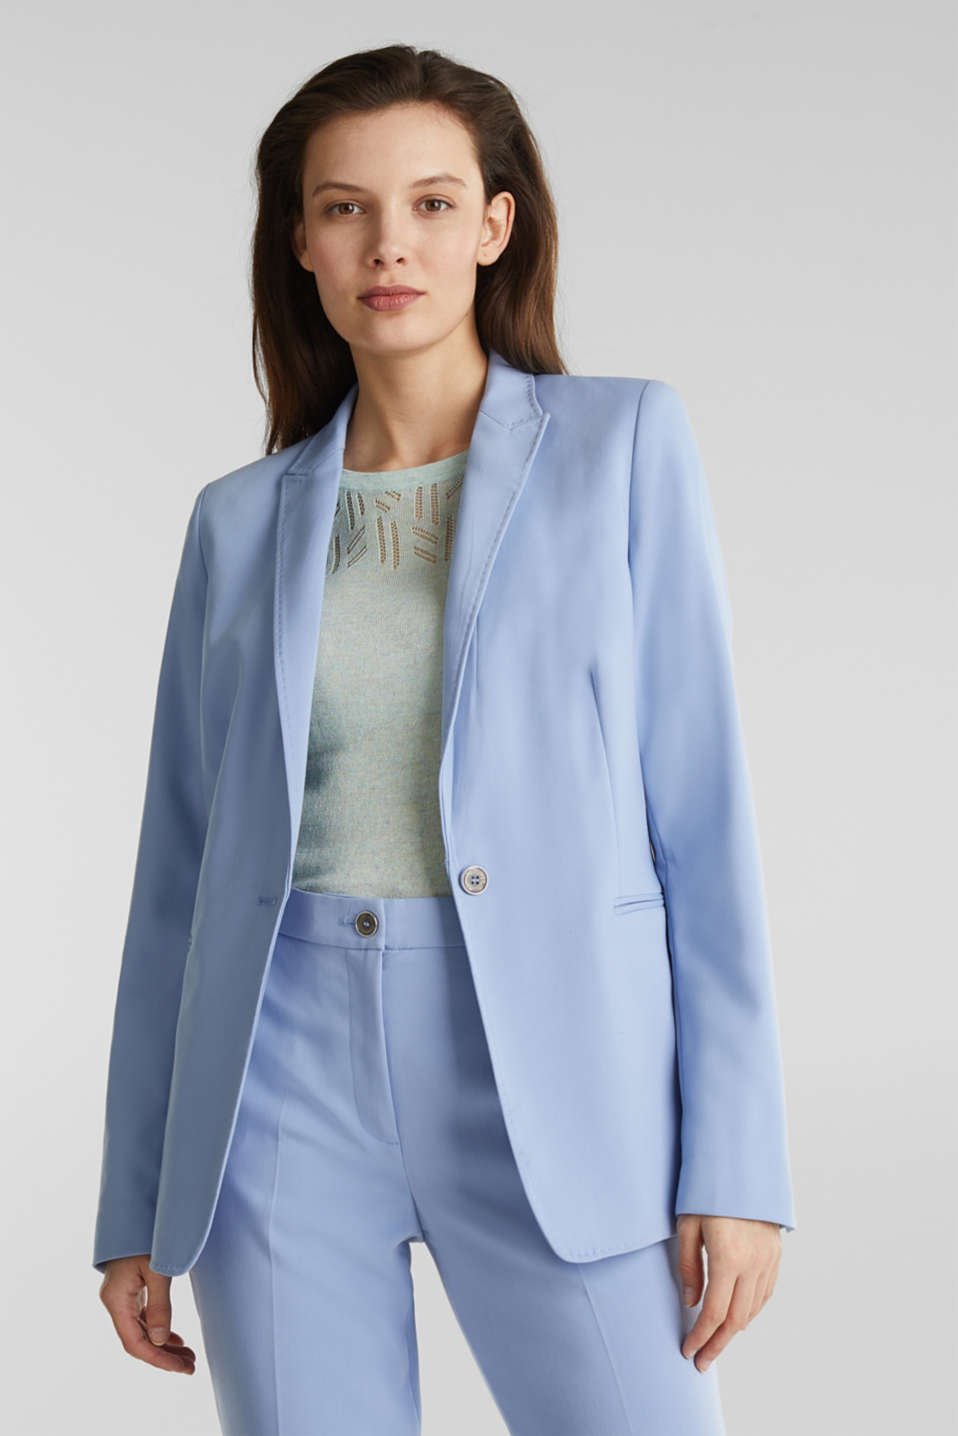 SPRING TWILL Mix + Match stretch blazer, LIGHT BLUE, detail image number 0